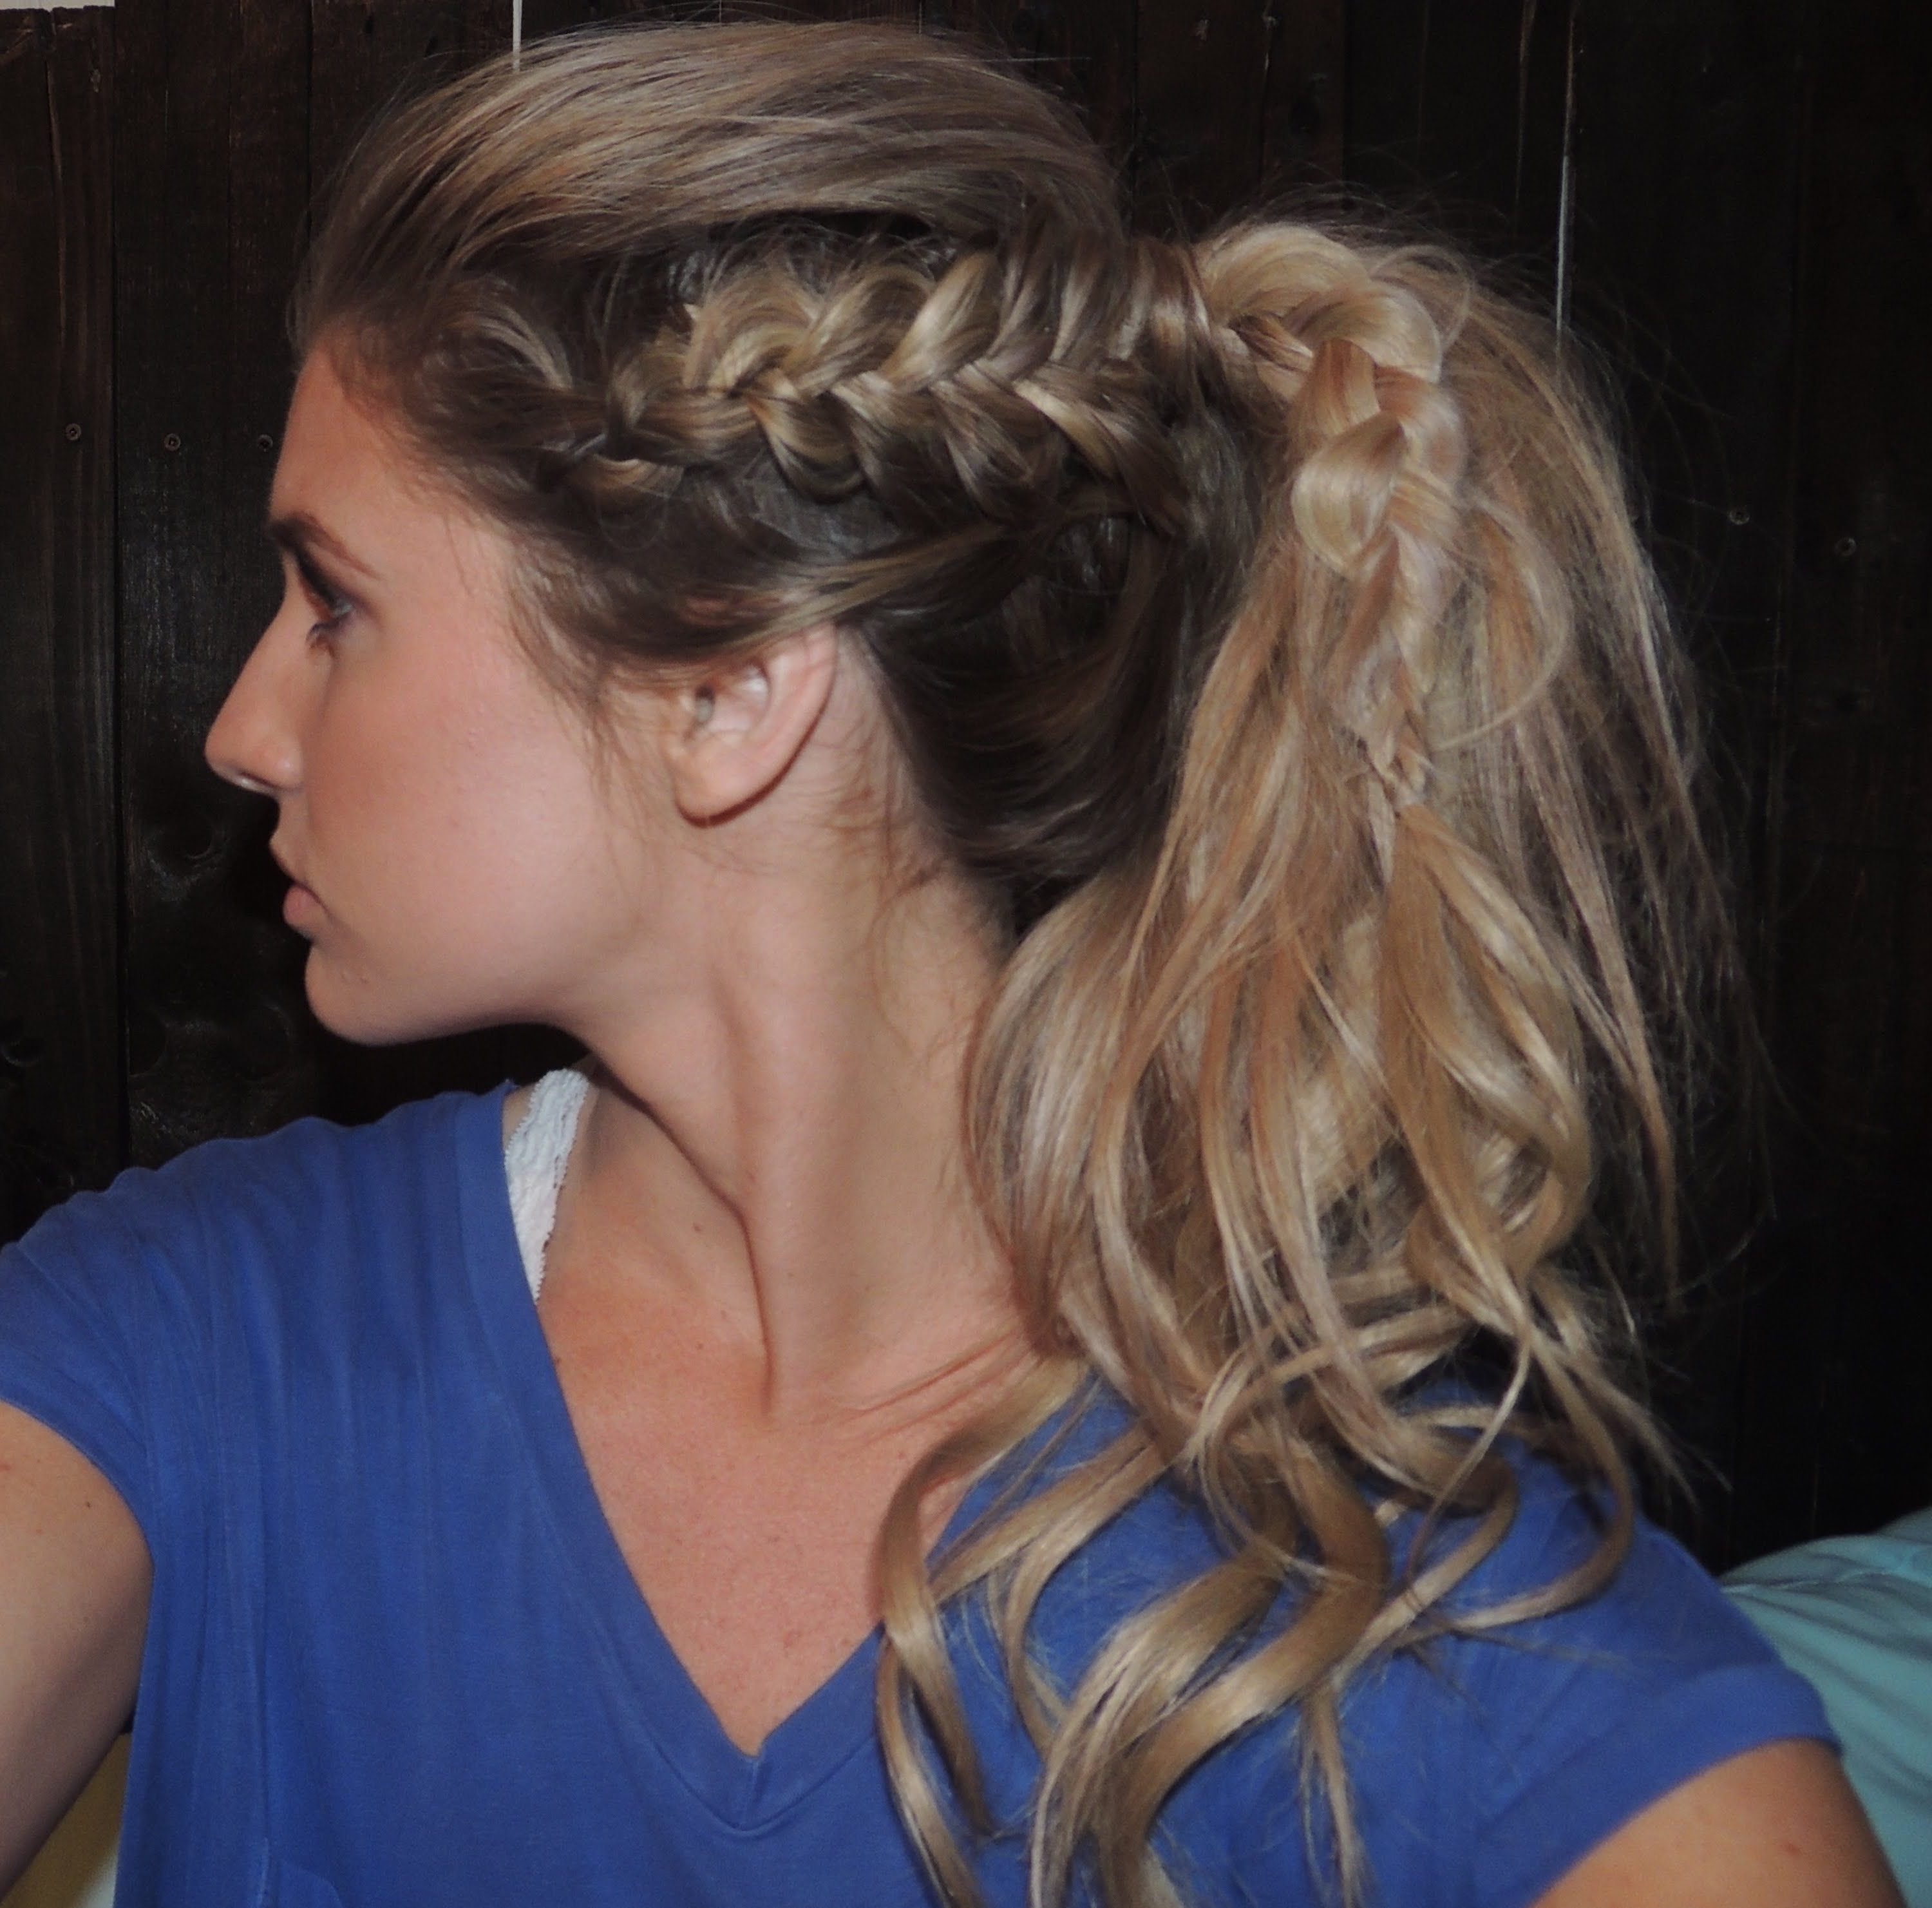 How To Tutorial On Side Dutch Braids To A Ponytail – Youtube Within Most Recent Ponytail Hairstyles With Dutch Braid (View 12 of 20)